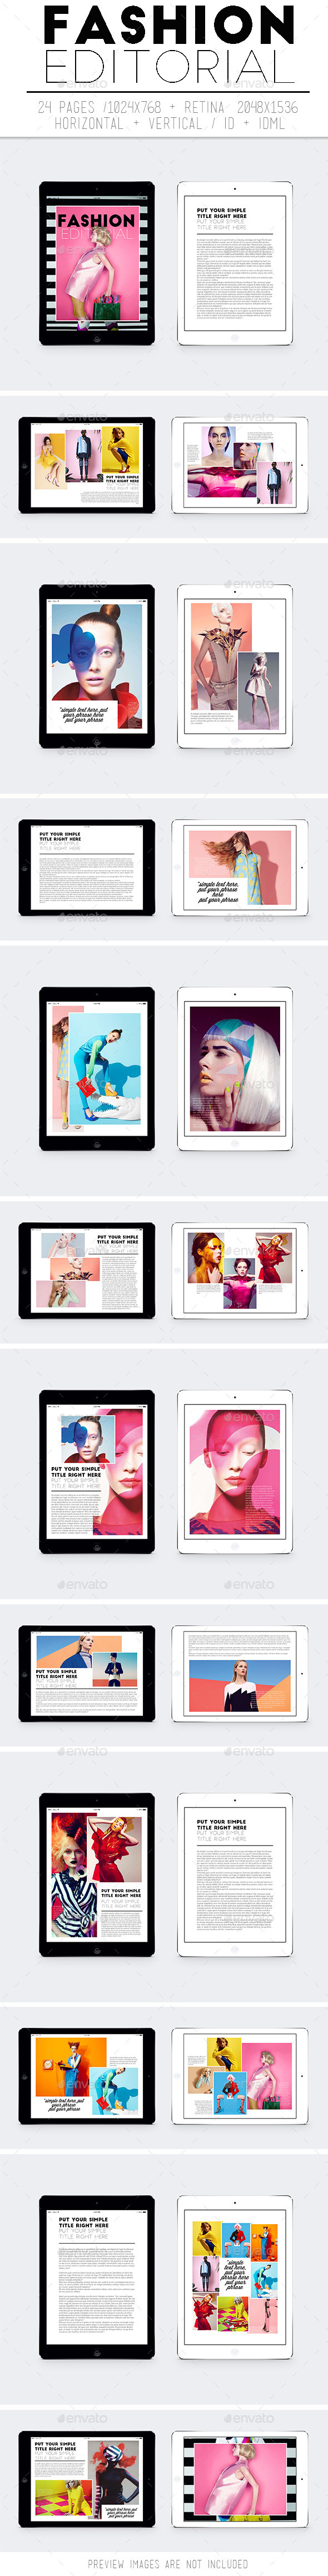 Tablet Fashion Editorial - Digital Magazines ePublishing